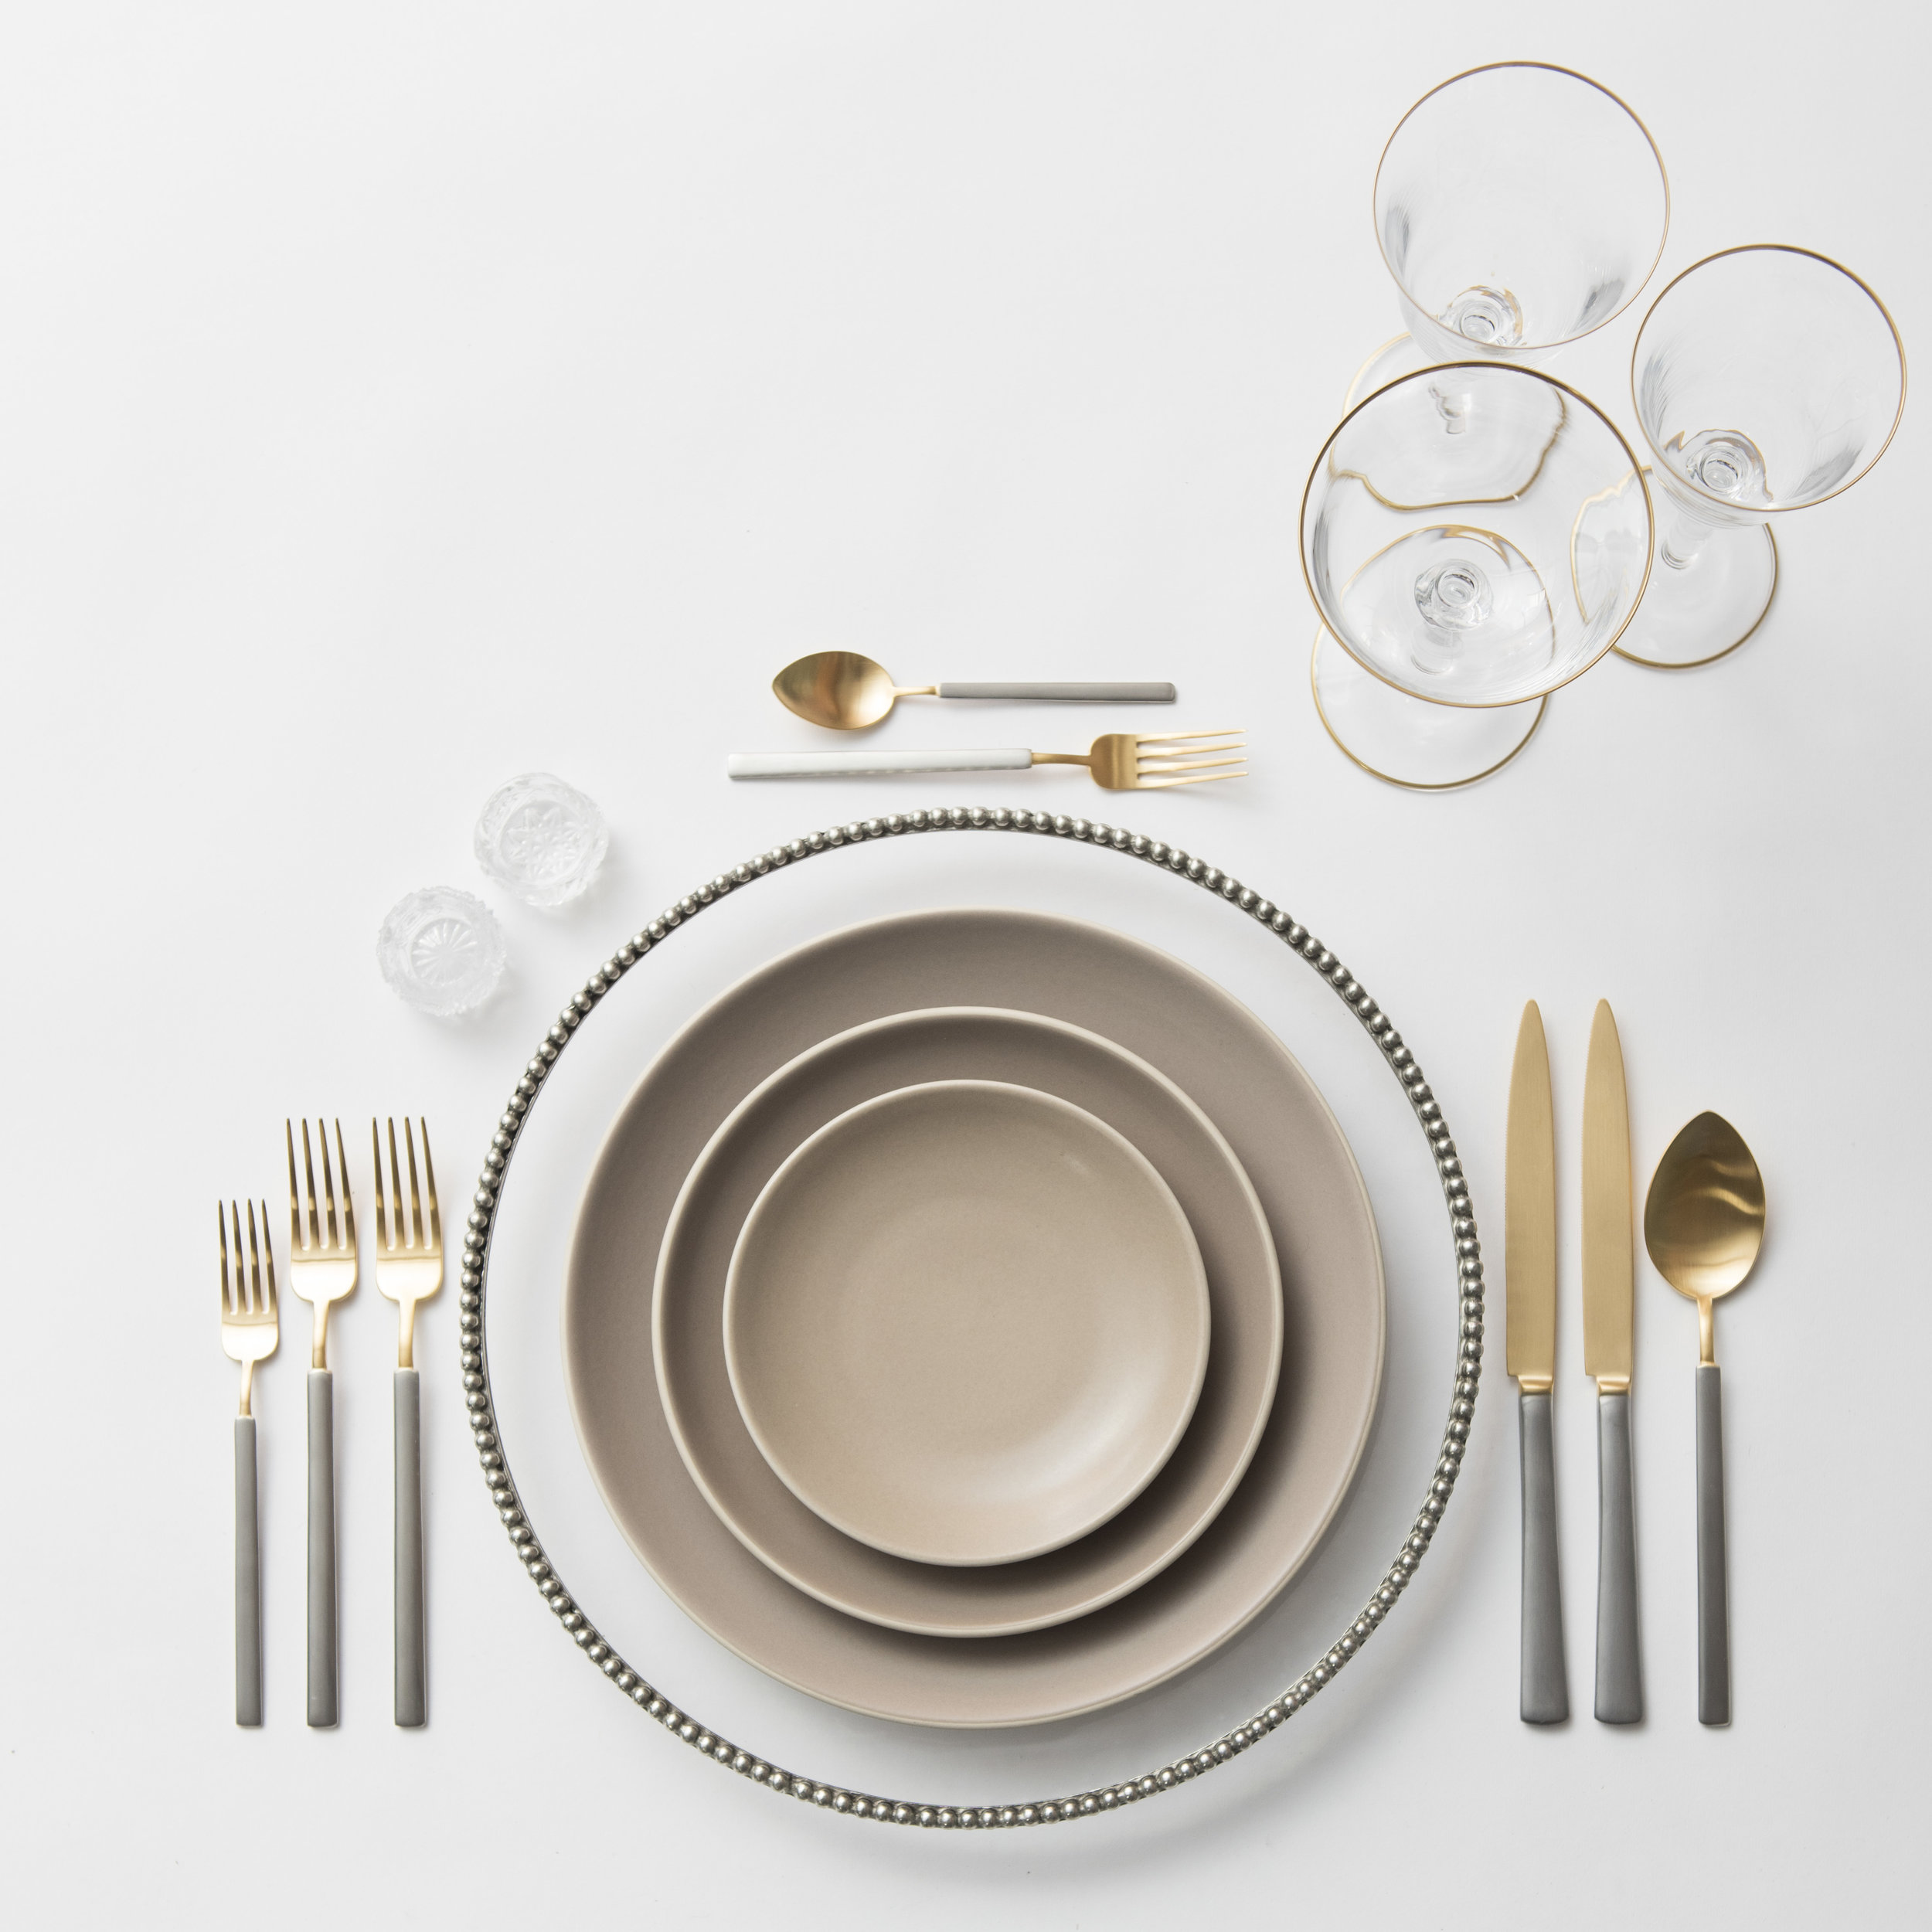 RENT: Pav é Glass Chargers in Pewter  + Heath Ceramics in French Grey + Axel Flatware in Matte 24k Gold/Silver + Chloe 24k Gold Rimmed Stemware + Antique Crystal Salt Cellars  SHOP: Chloe 24k Gold Rimmed Stemware